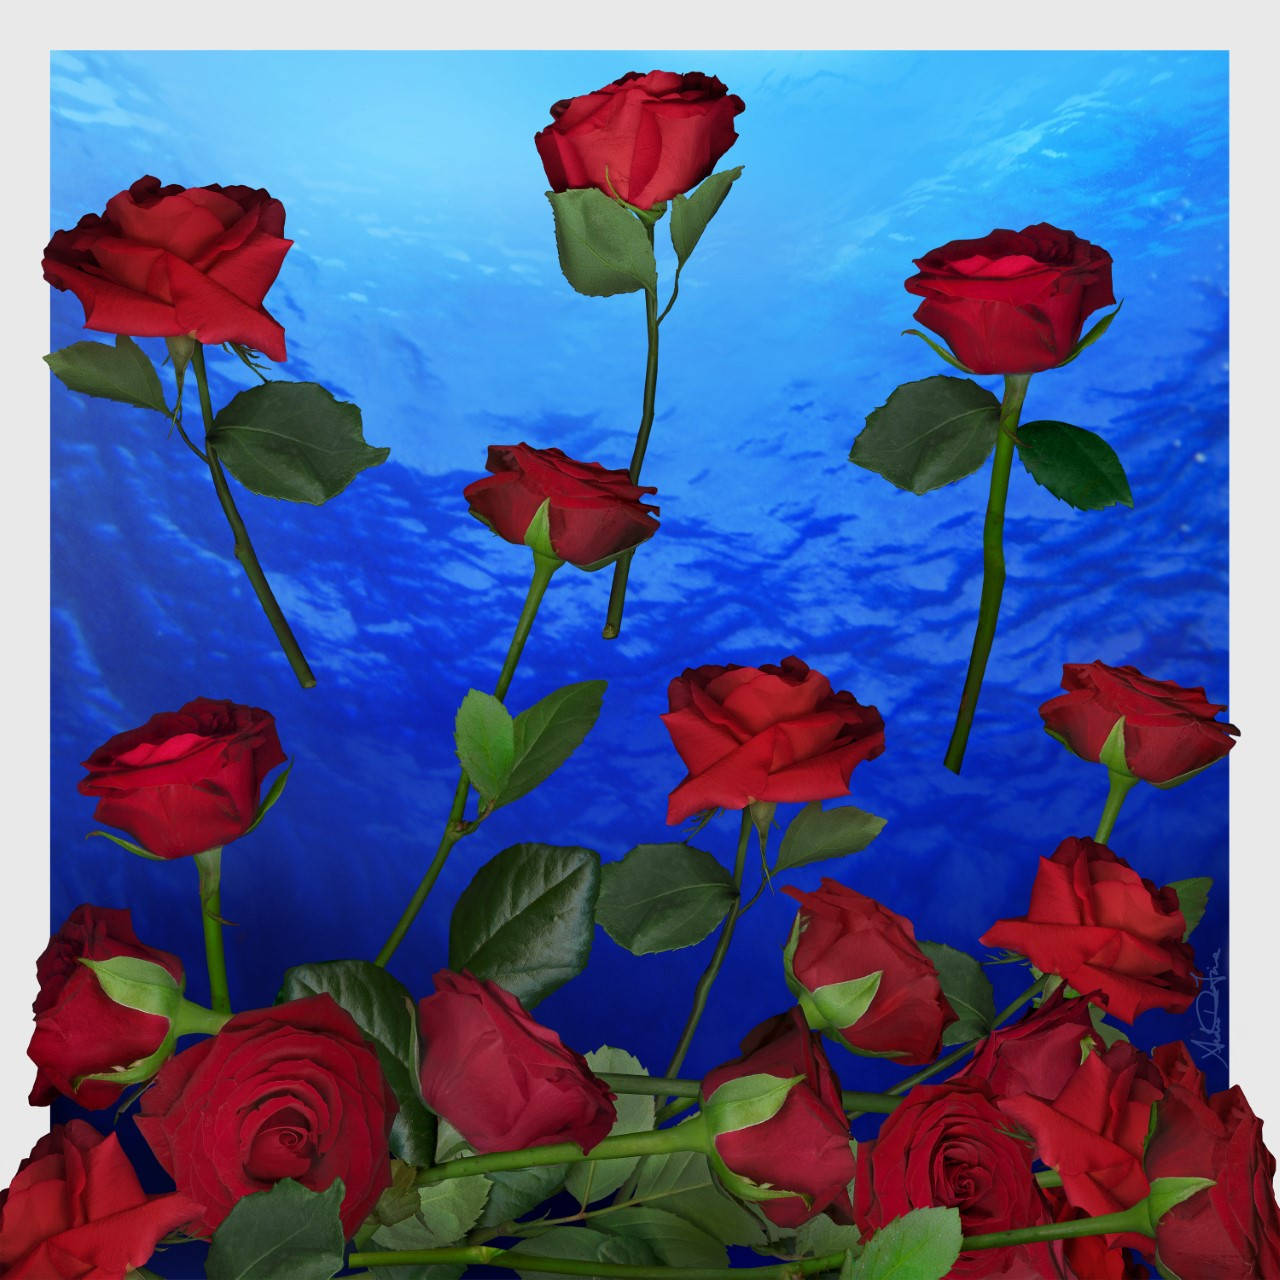 Rose, Beautiful, National flower of America.Luxury, 100% silk, made in Italy.